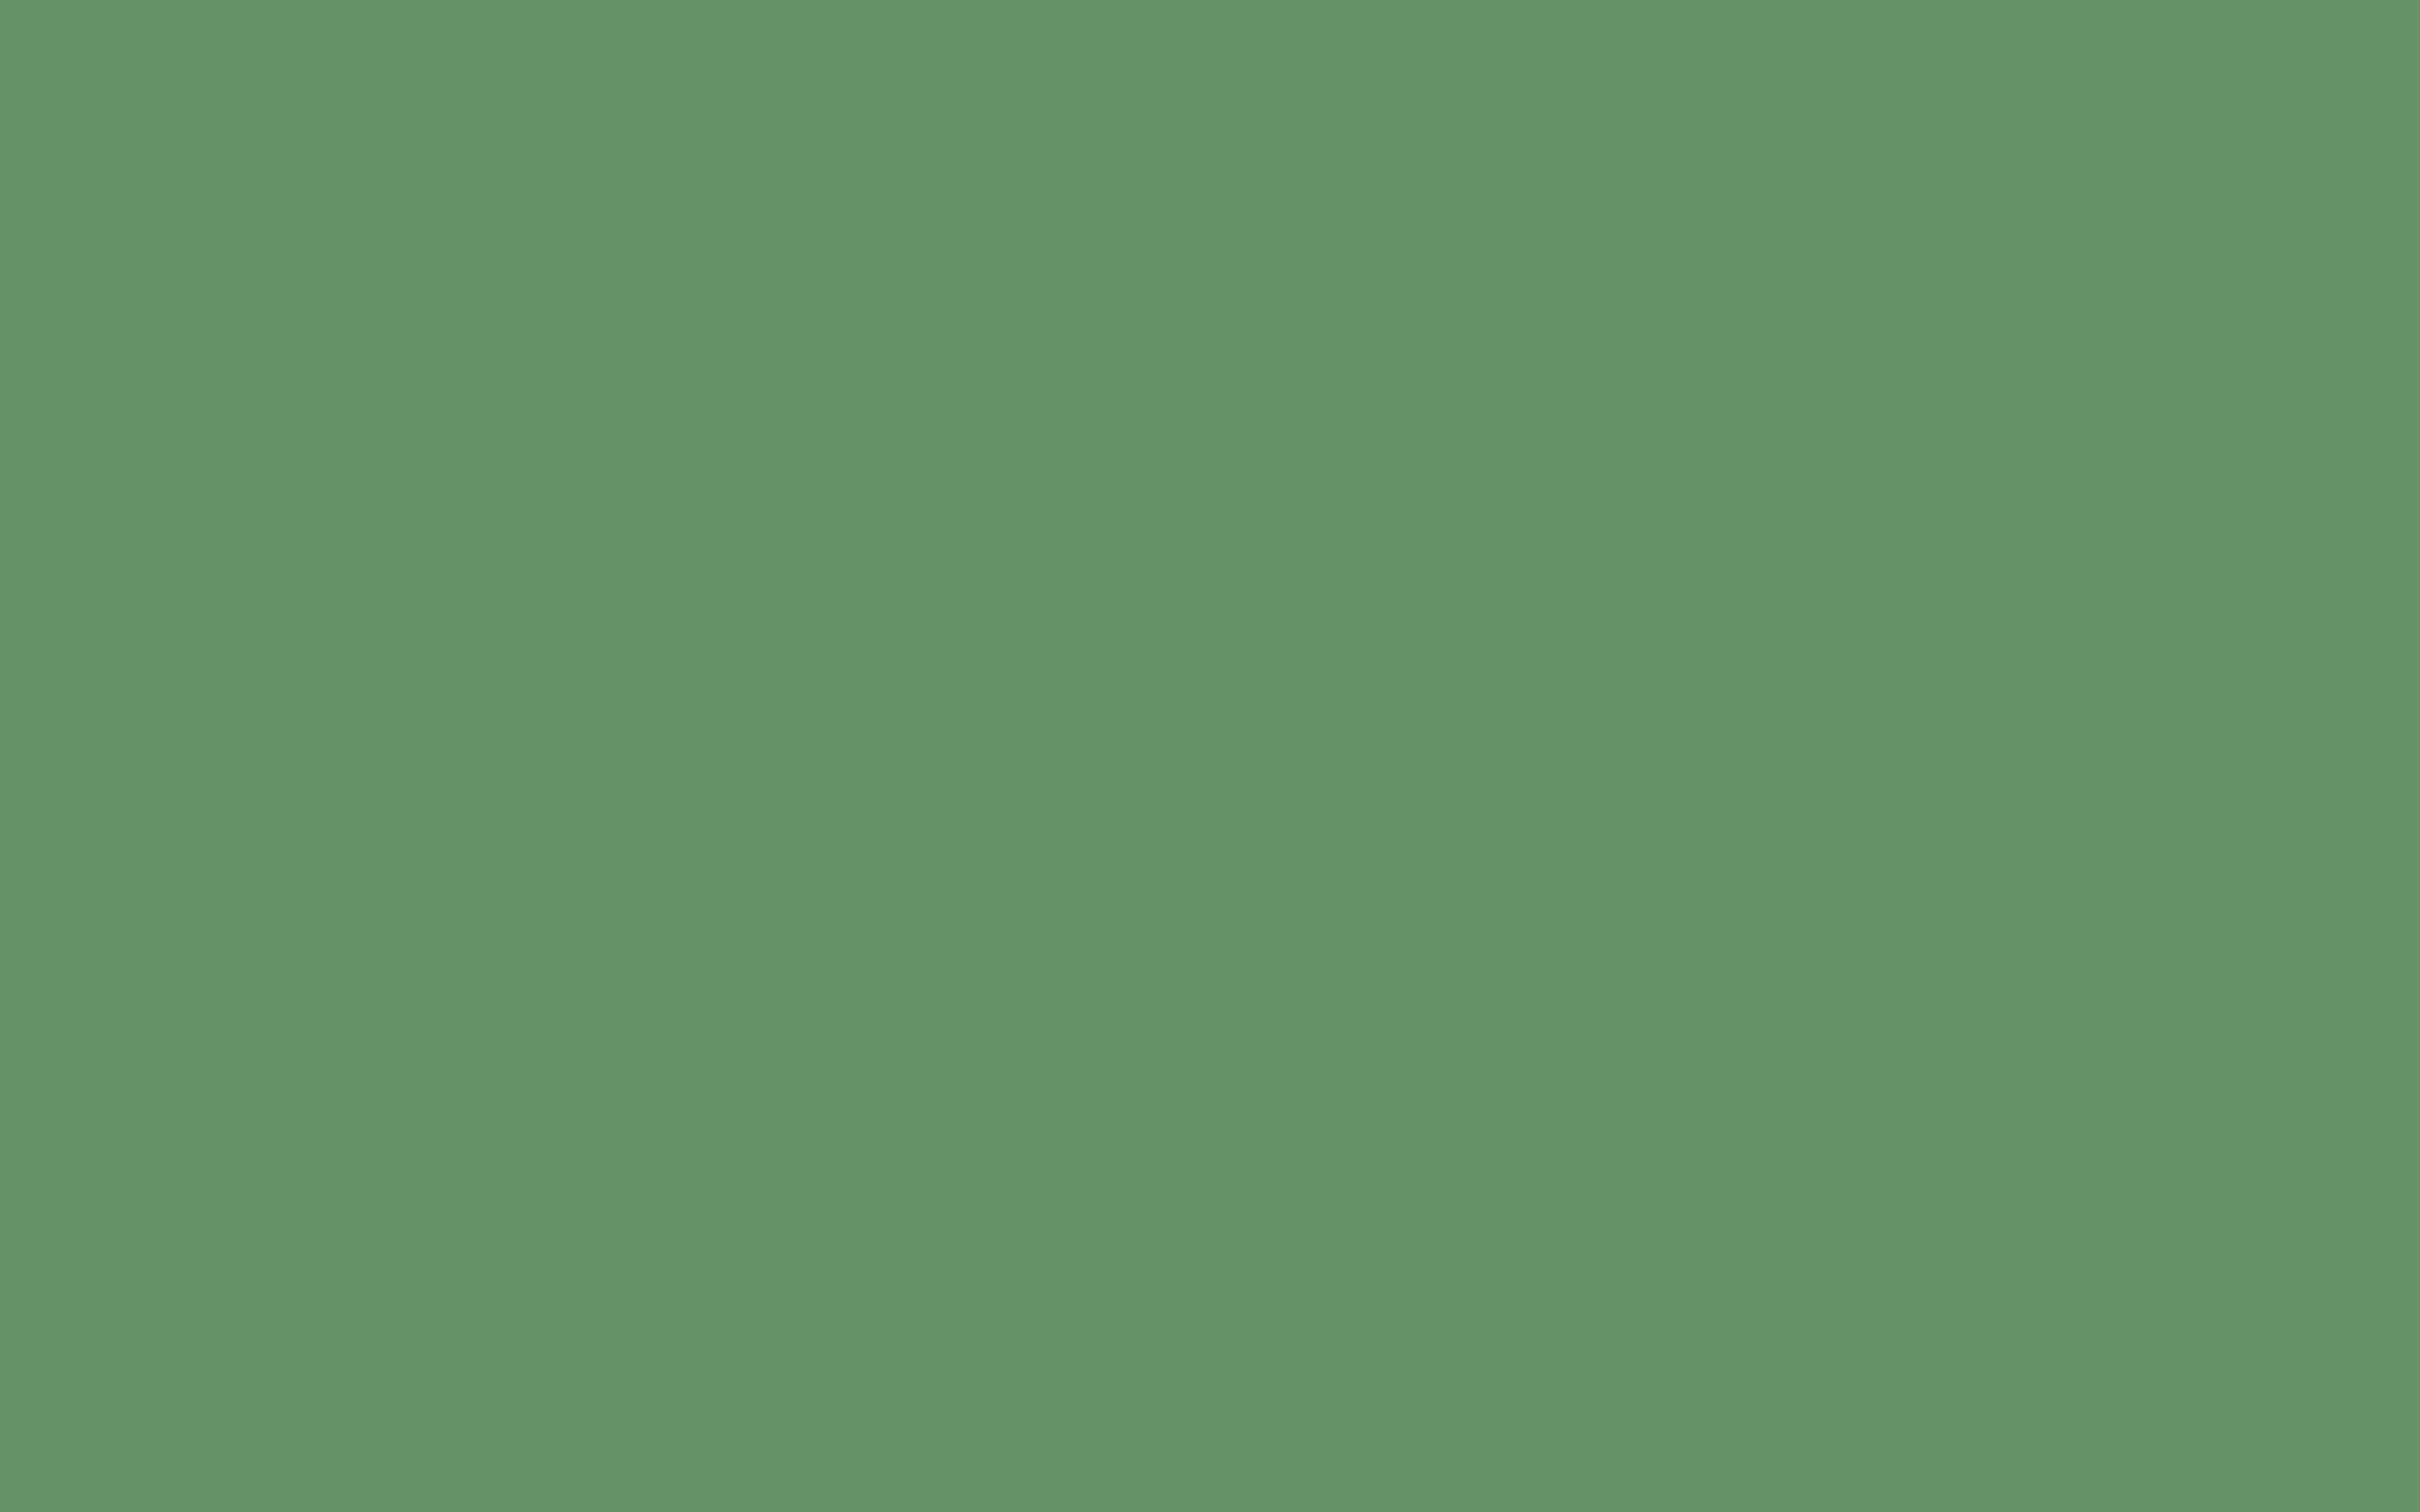 2560x1600 Russian Green Solid Color Background